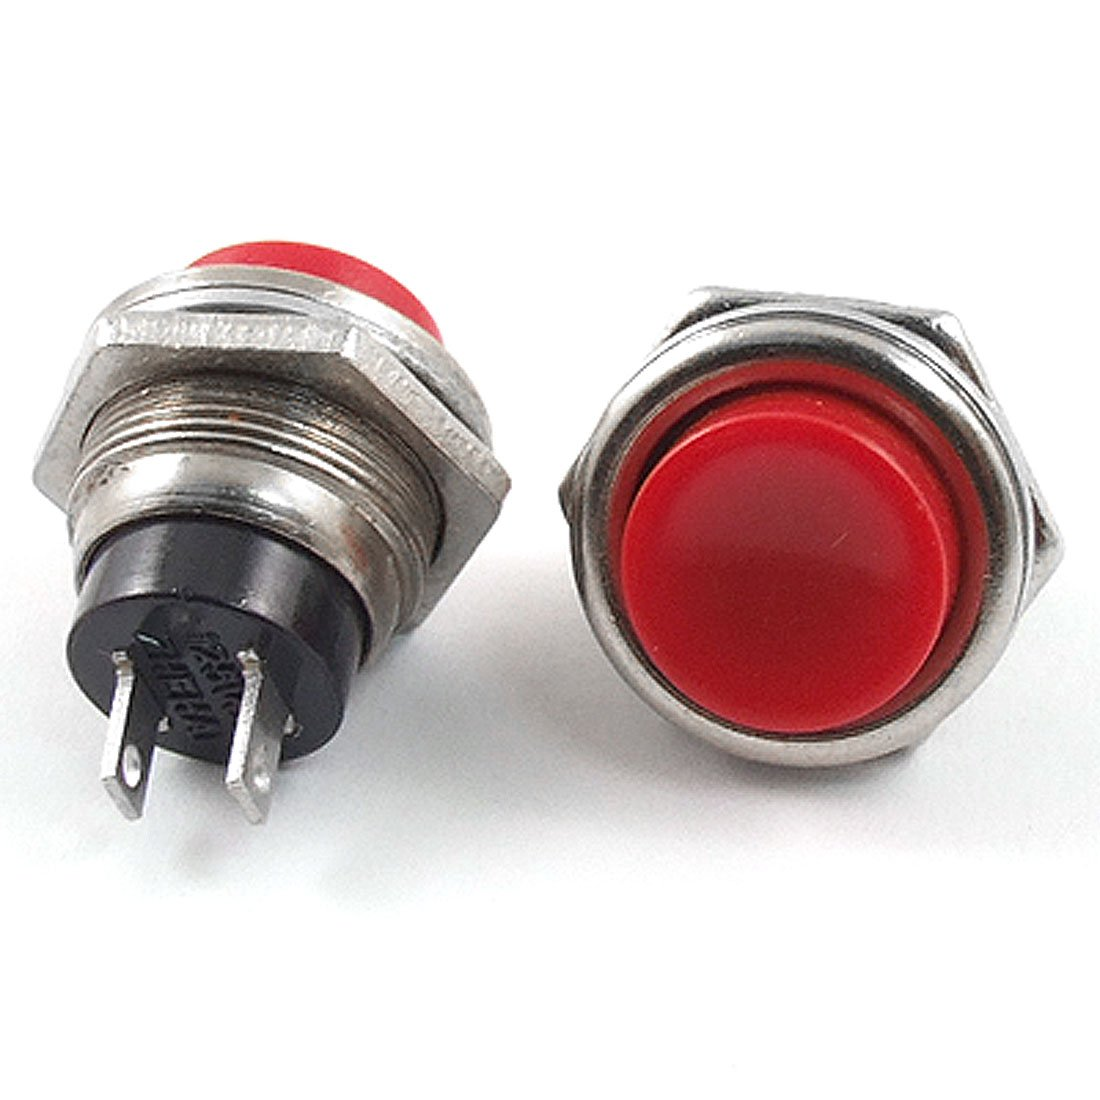 Uxcell A11123000ux0410 Normal Open Momentary Push Button Switch 3 Wire Spst For Car Autoin Piece Ac 125v Amp Red Industrial Scientific